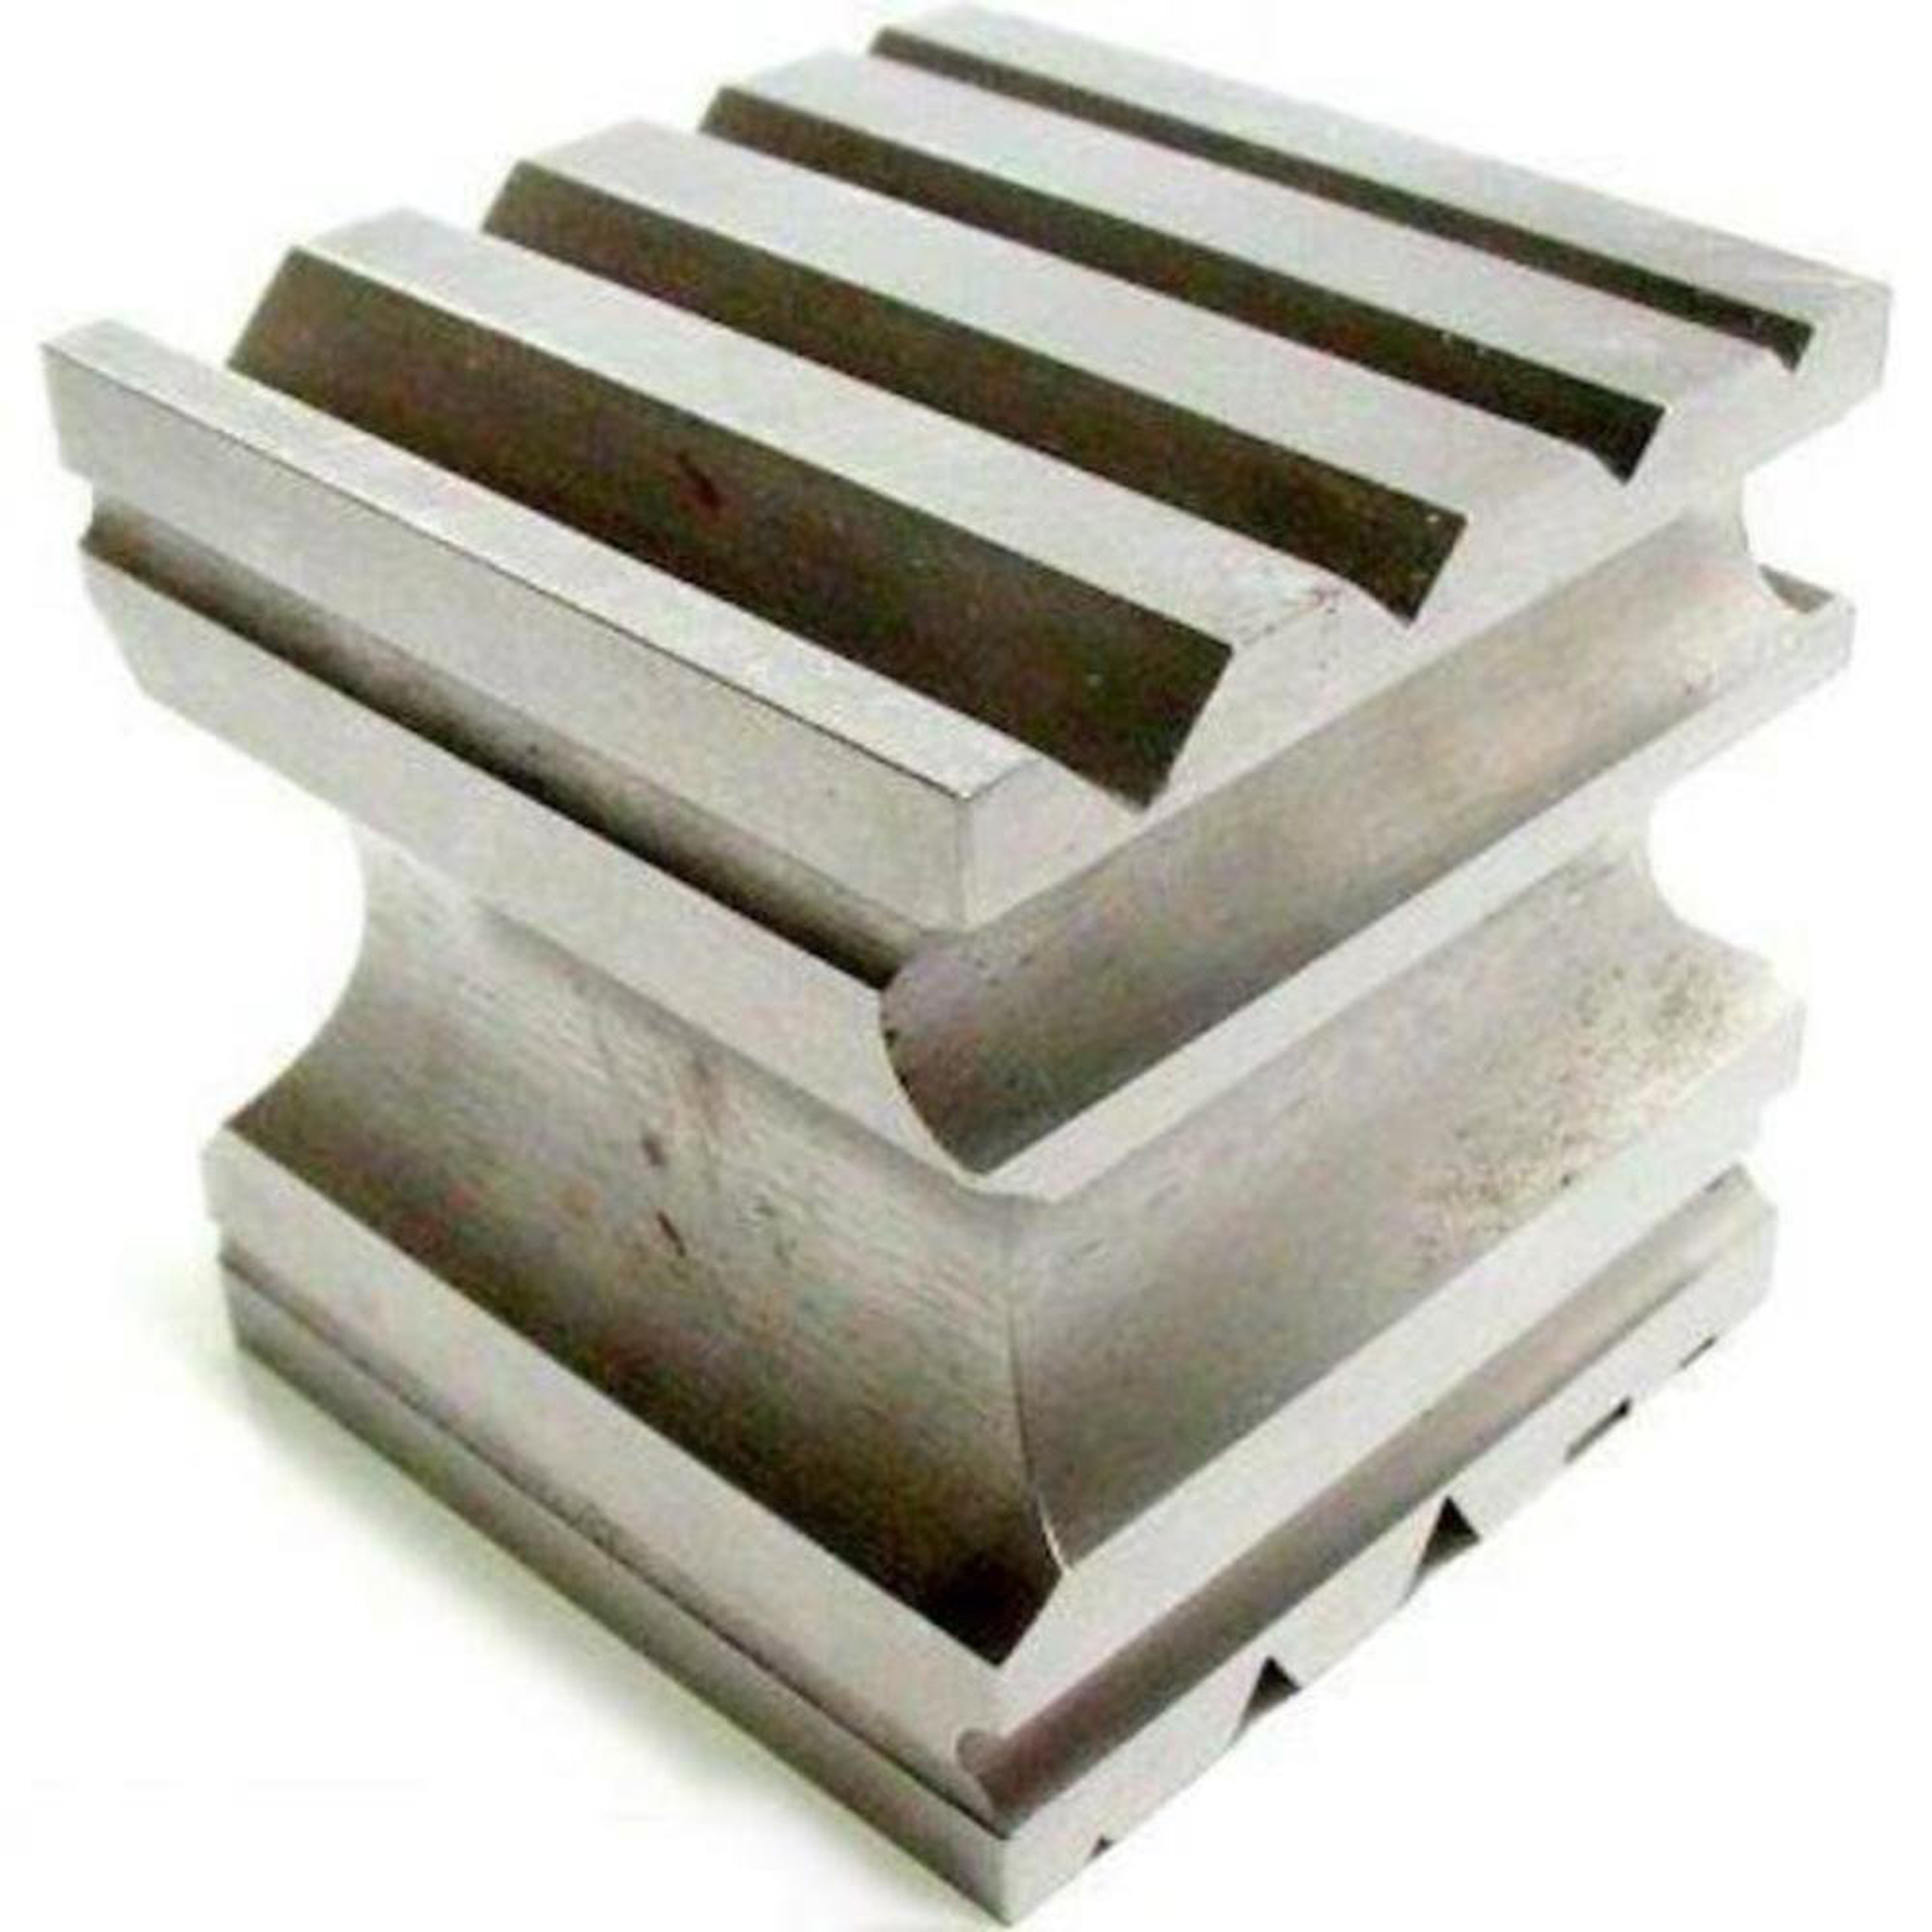 "SWAGE BLOCK, 2.5"" Made of solid steel for bending and shaping"